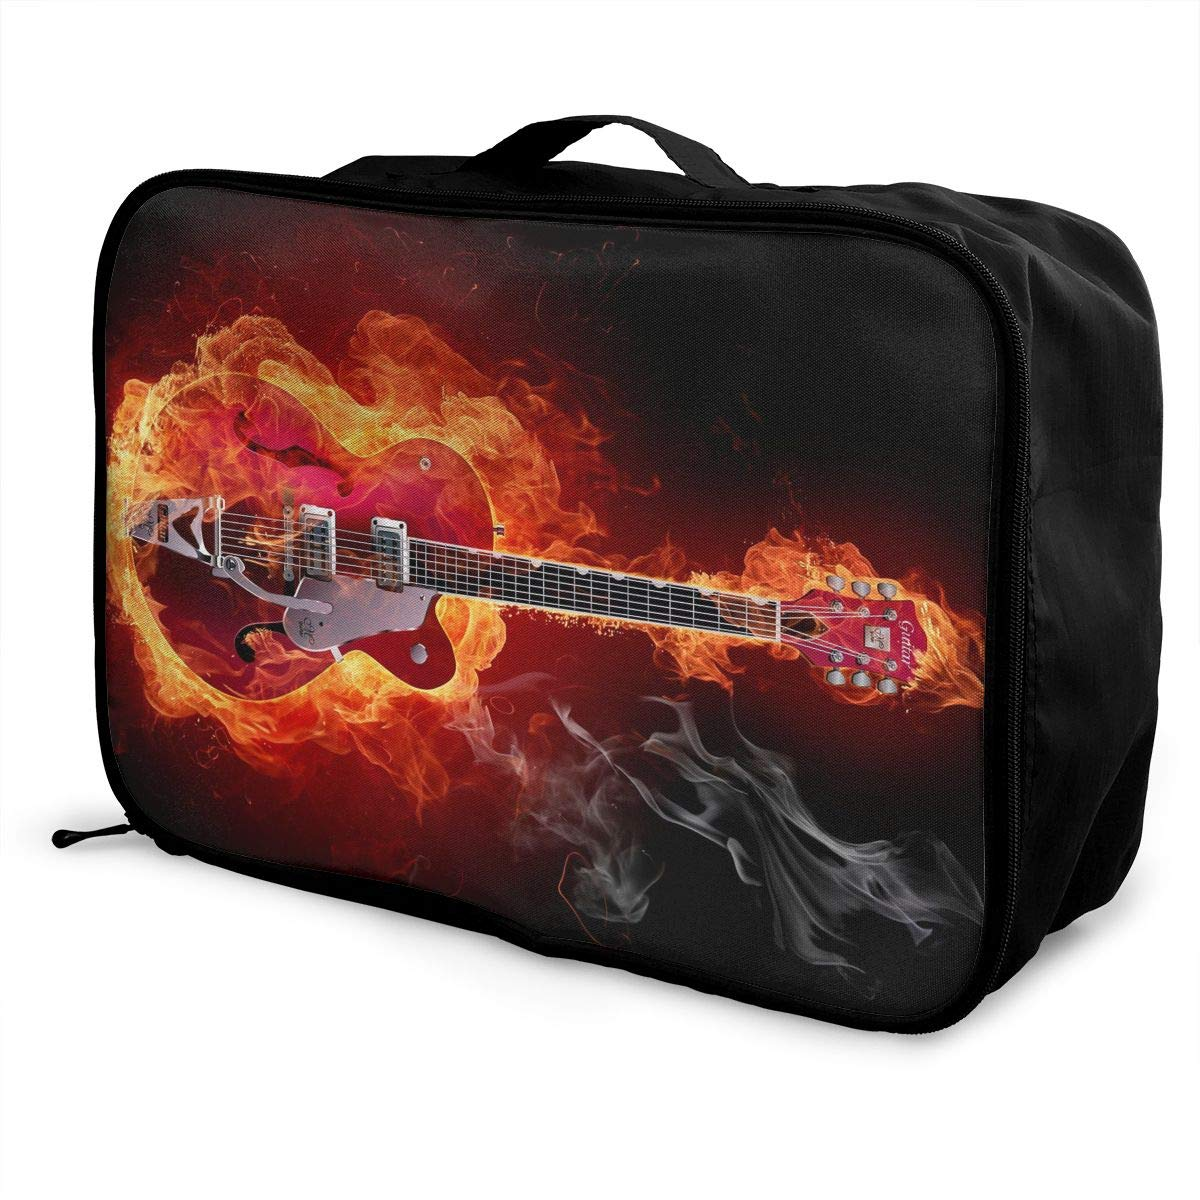 Travel Luggage Duffle Bag Lightweight Portable Handbag Fire Guitar Print Large Capacity Waterproof Foldable Storage Tote